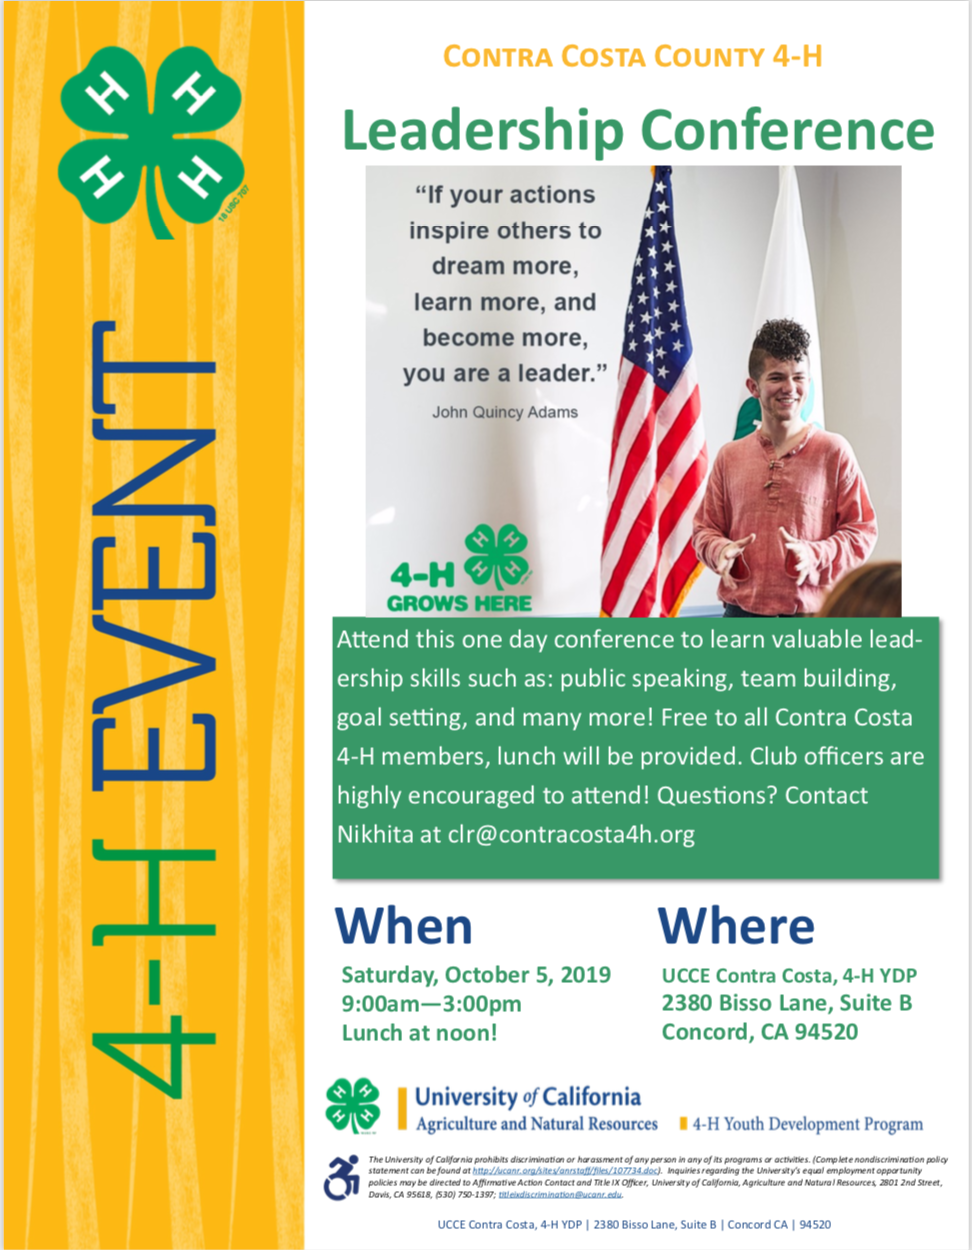 4-H Leadership Conference